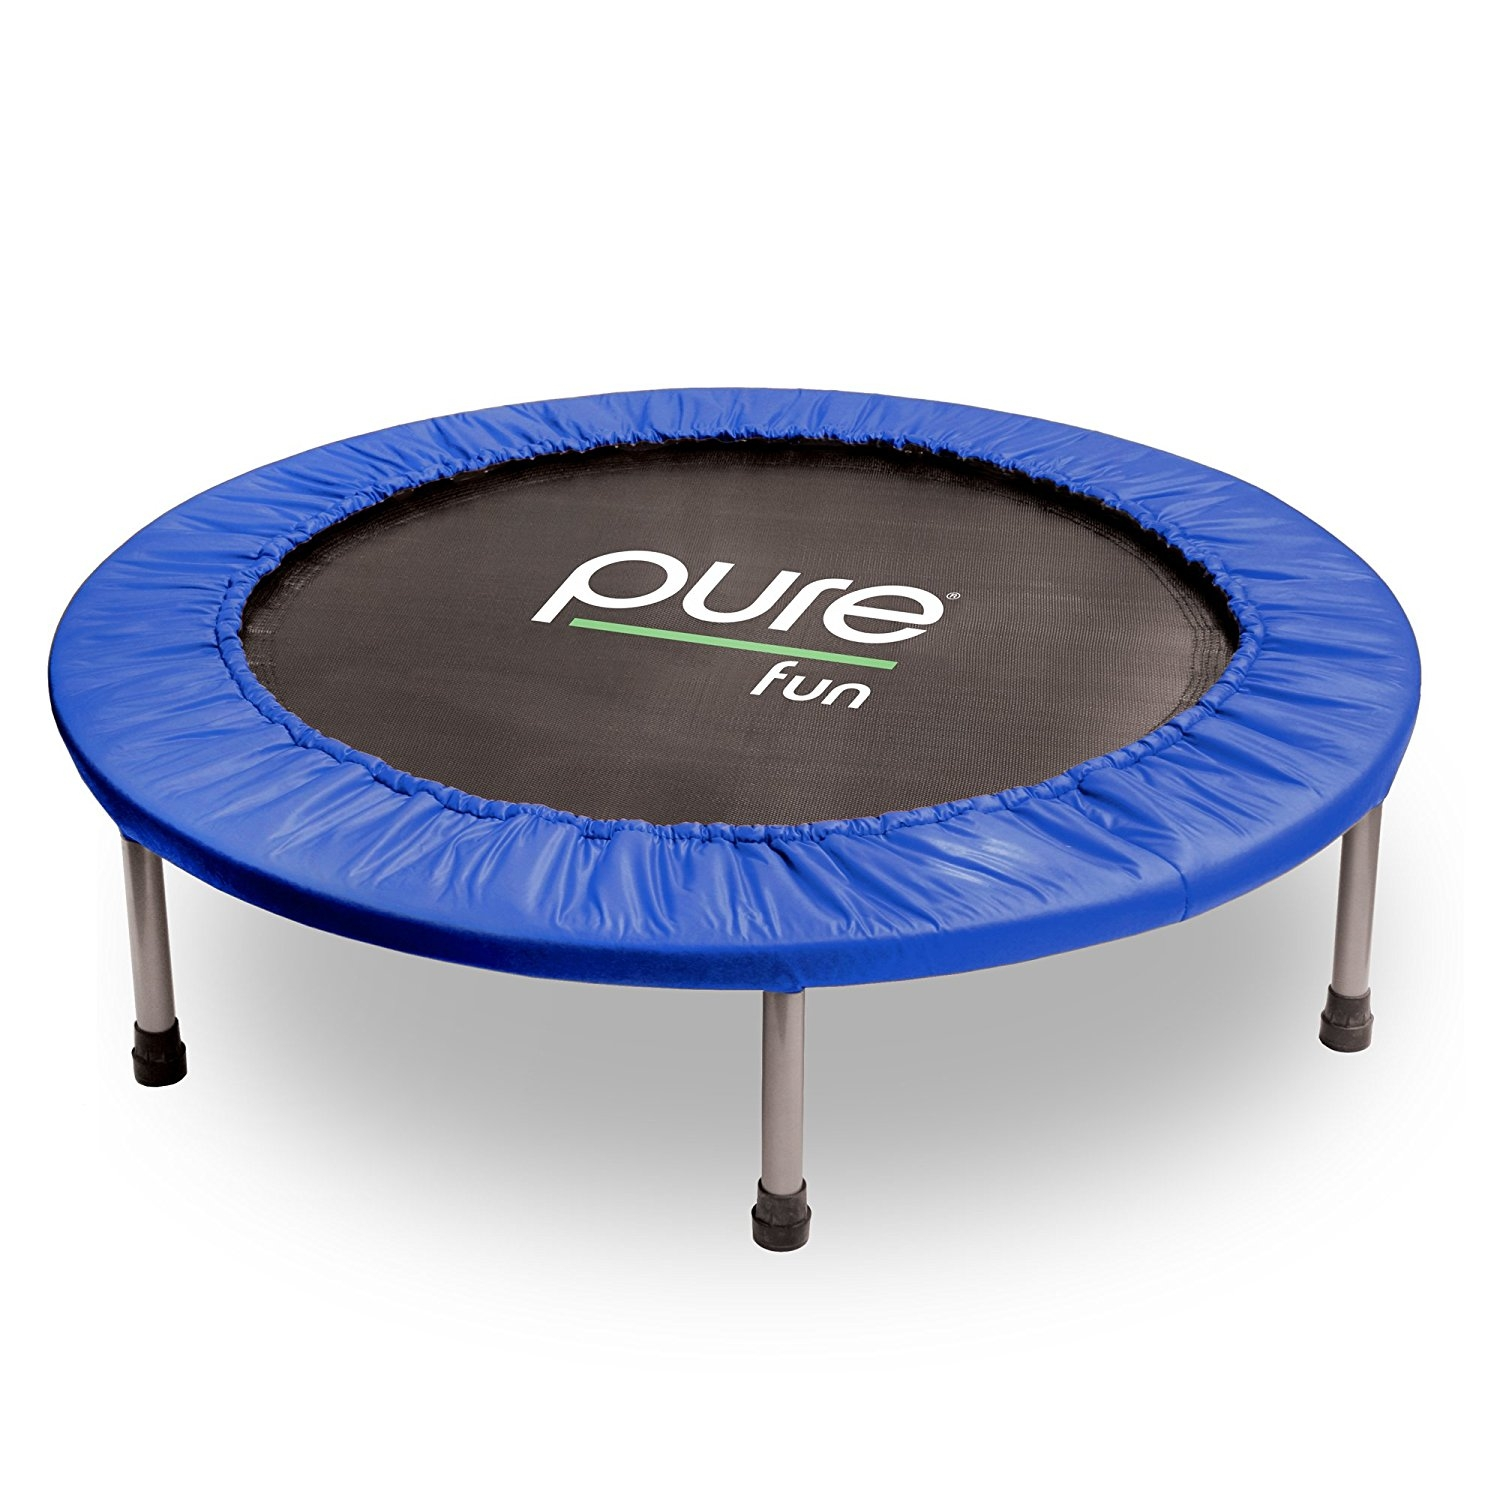 pure fun mini trampoline   re-energize your spiritual practice when life gets busy